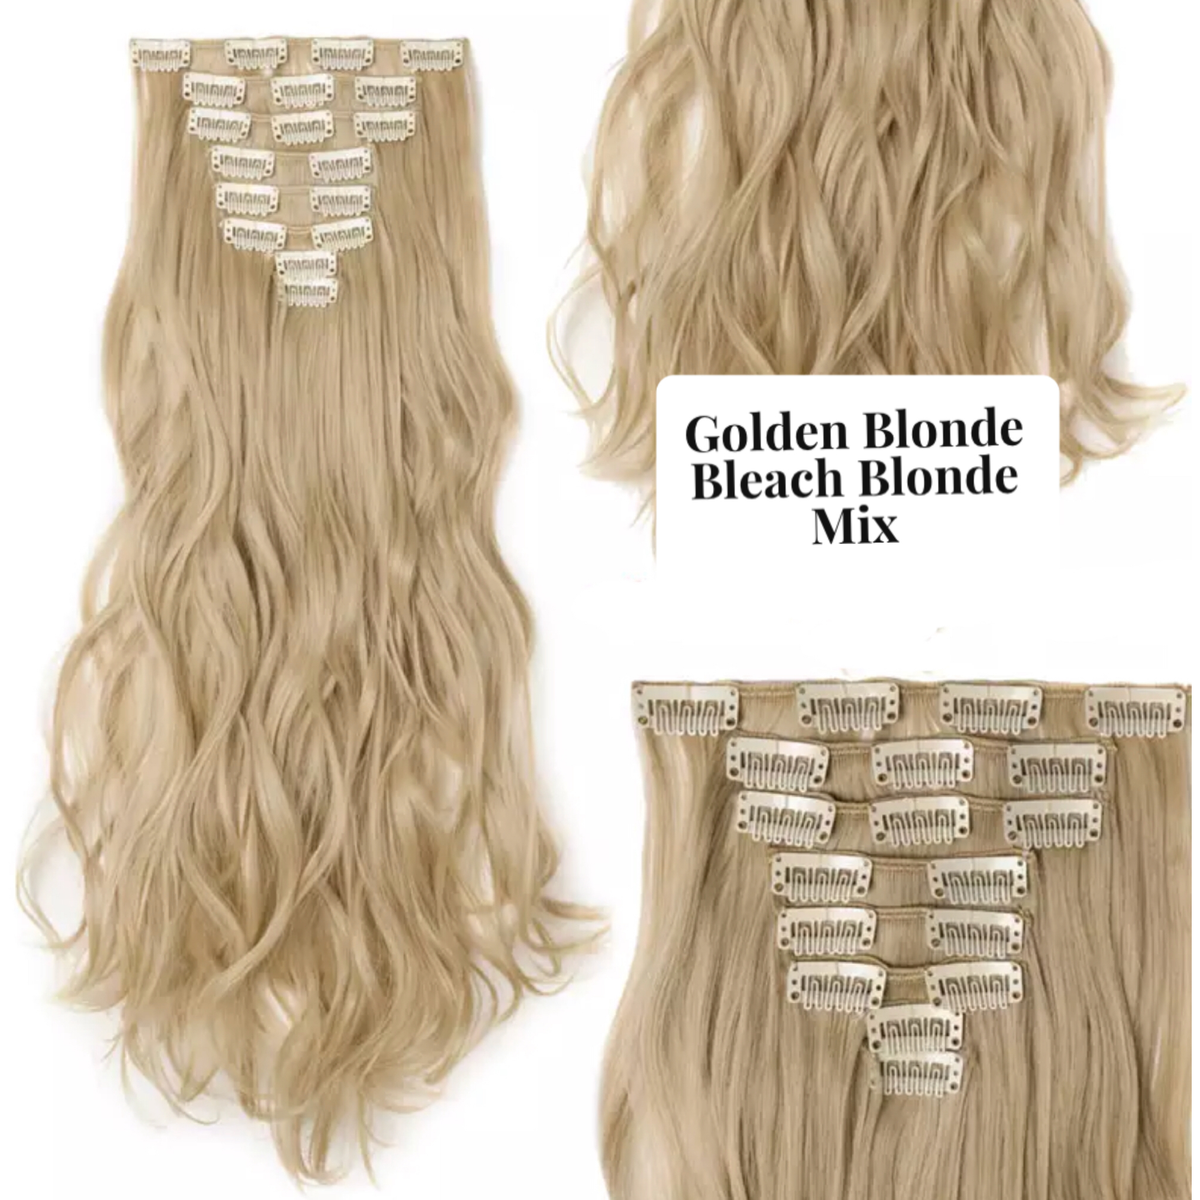 Curly Wavy Hair Extensions Lexi Noel Beauty Multiple Colors 24 inches - lexinoelbeauty.com